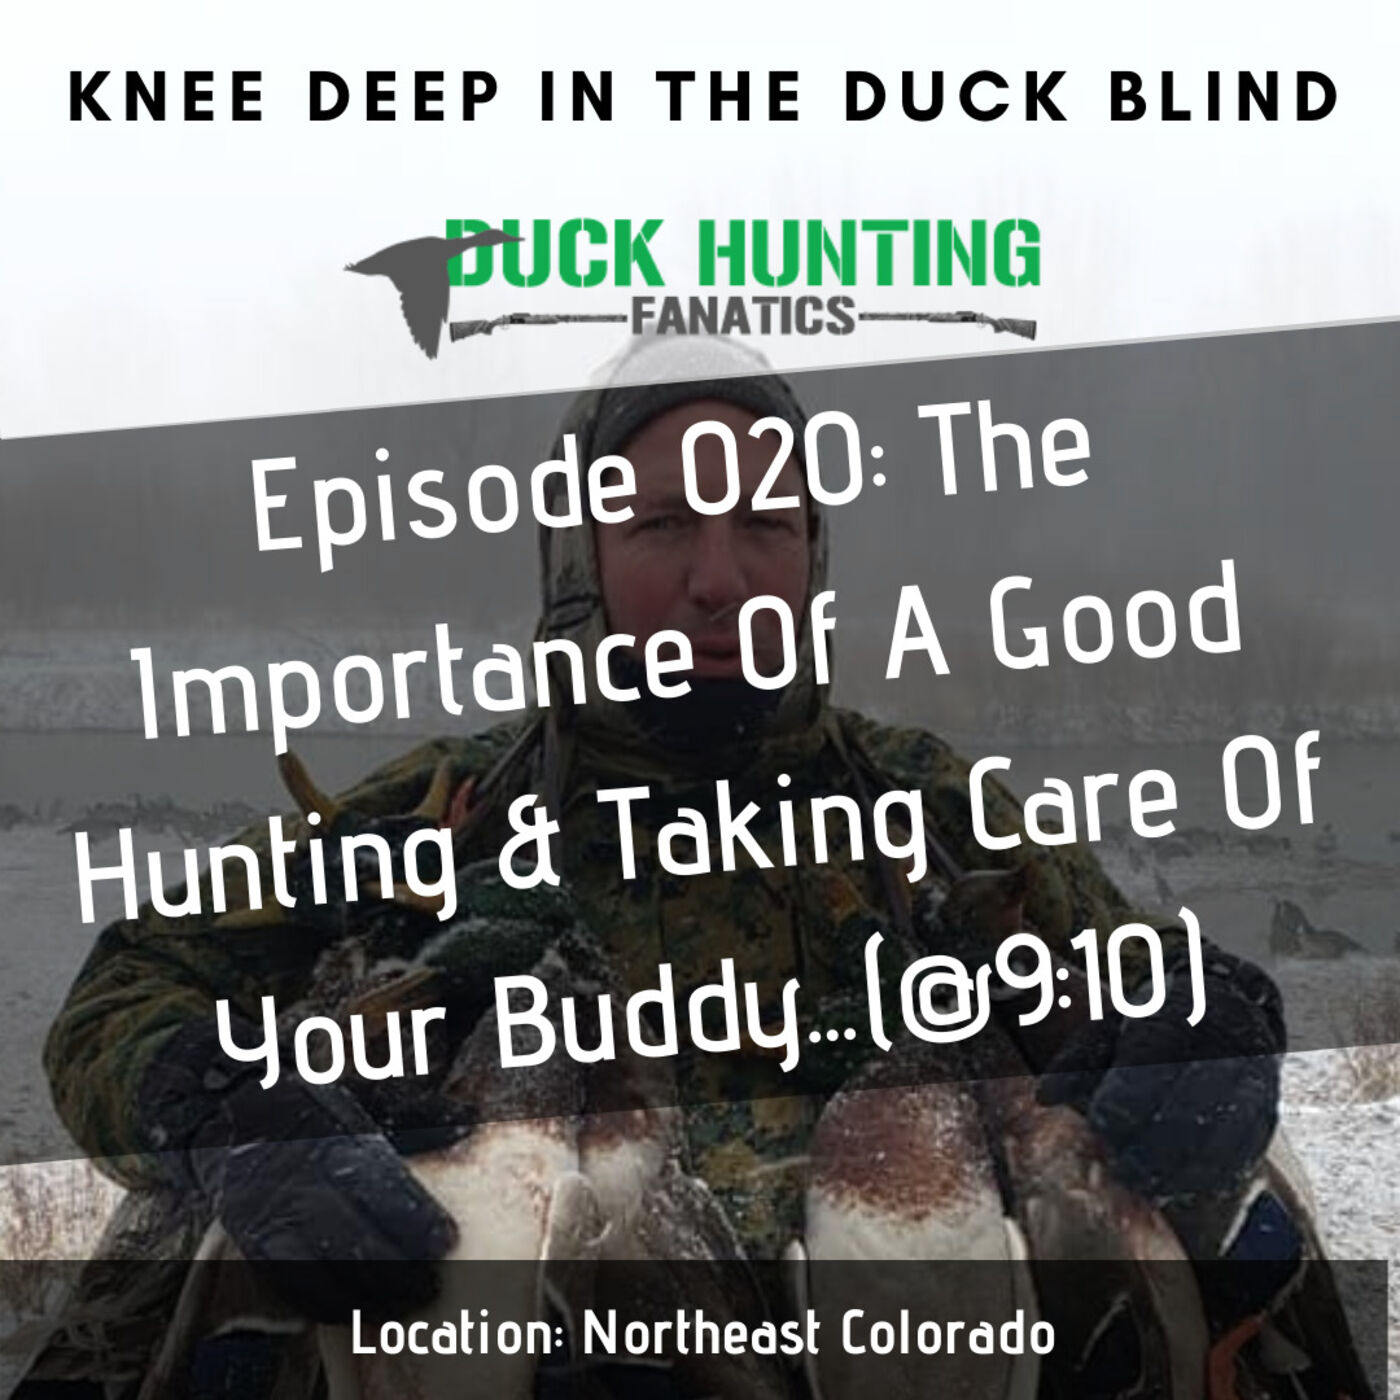 The Importance of a Good Duck Hunting Dog...